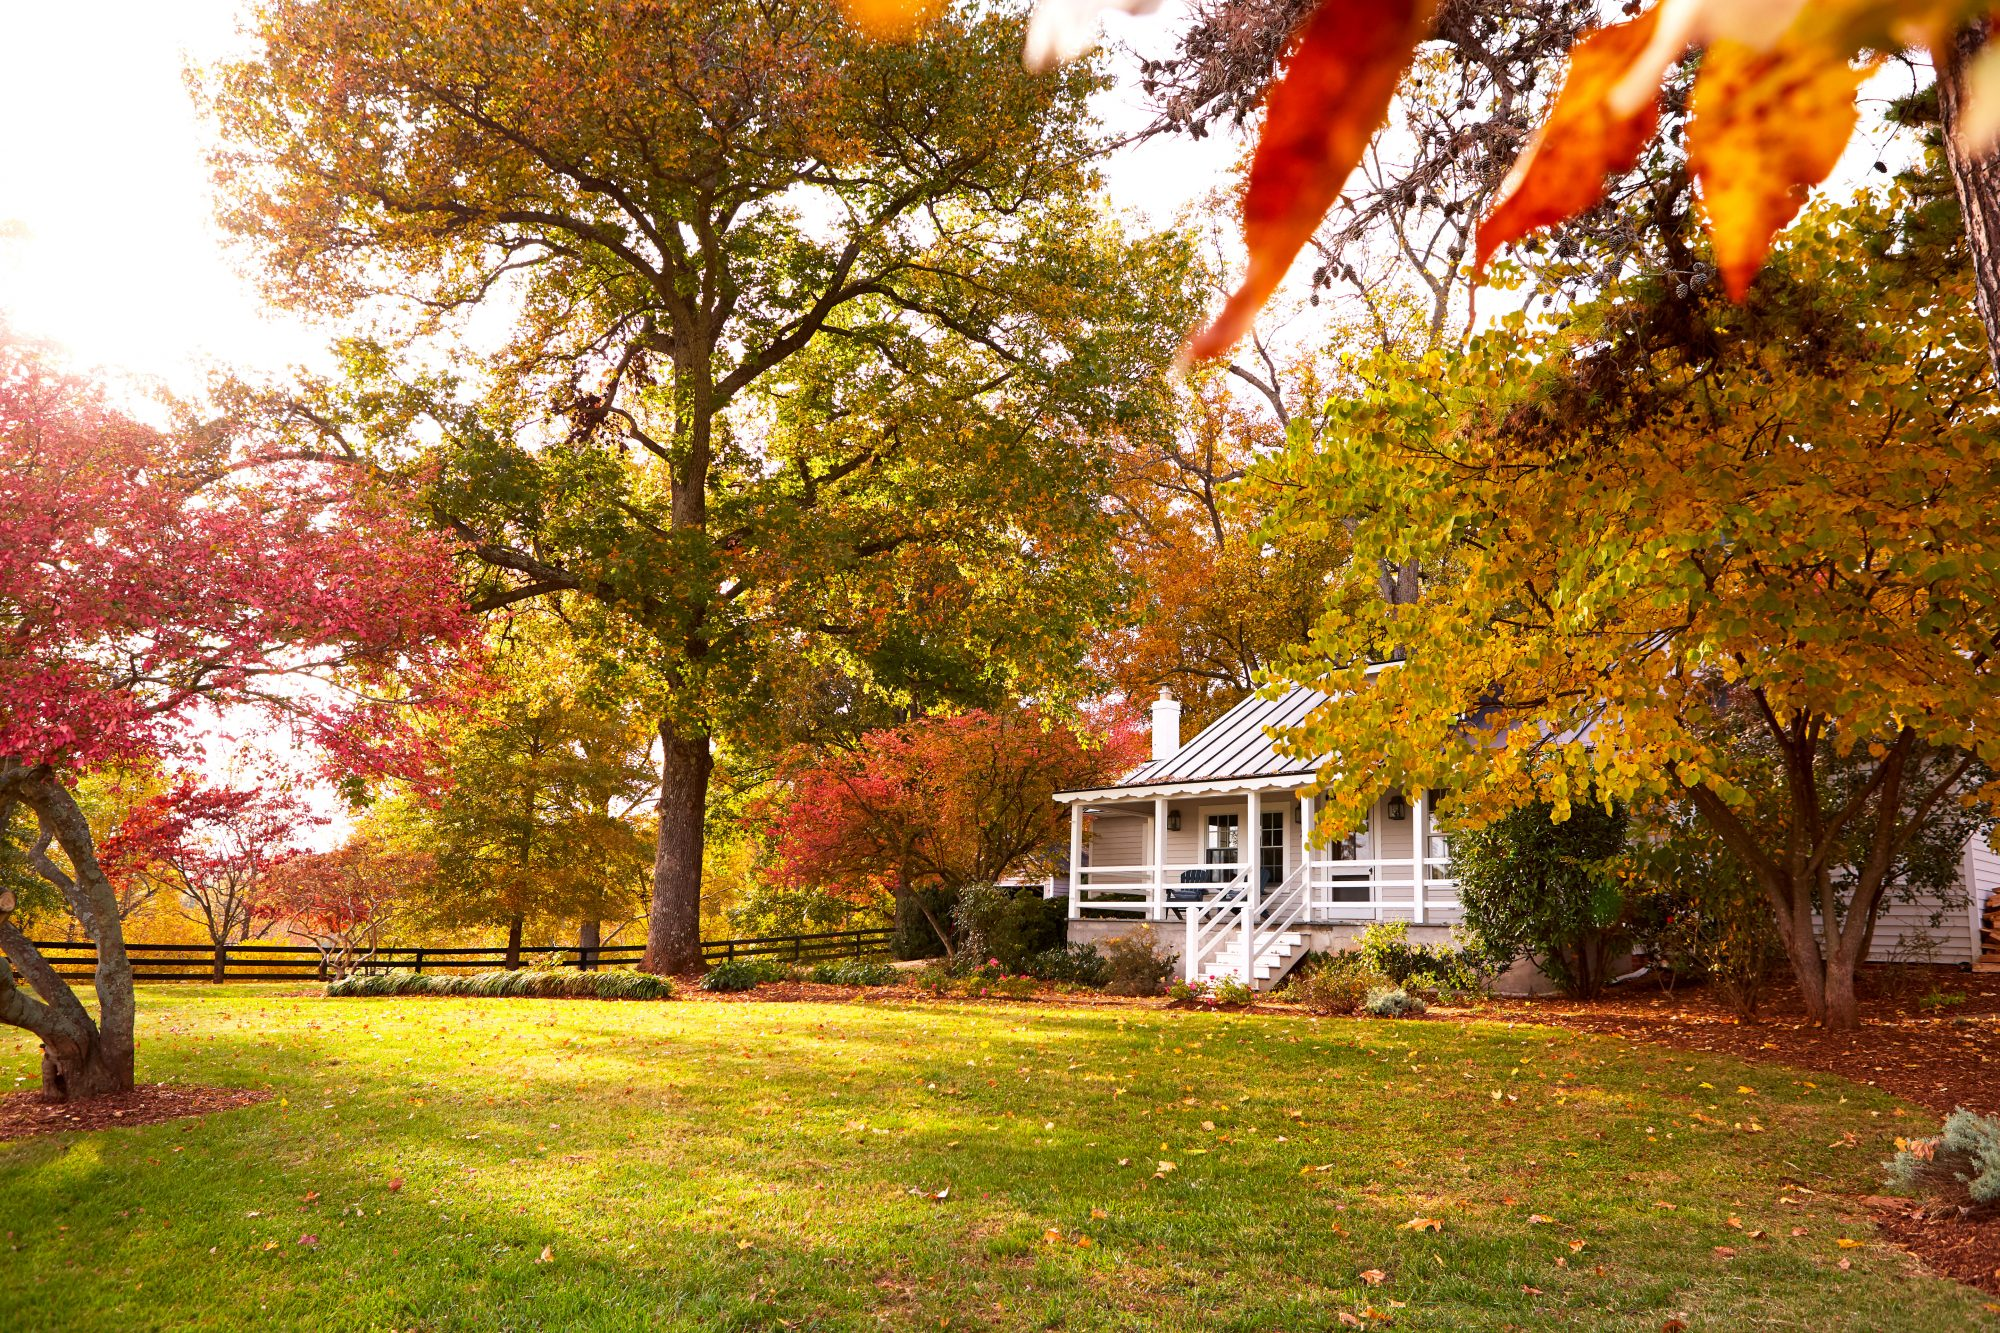 Madison Spencer Virginia Cottage with Fall Leaves